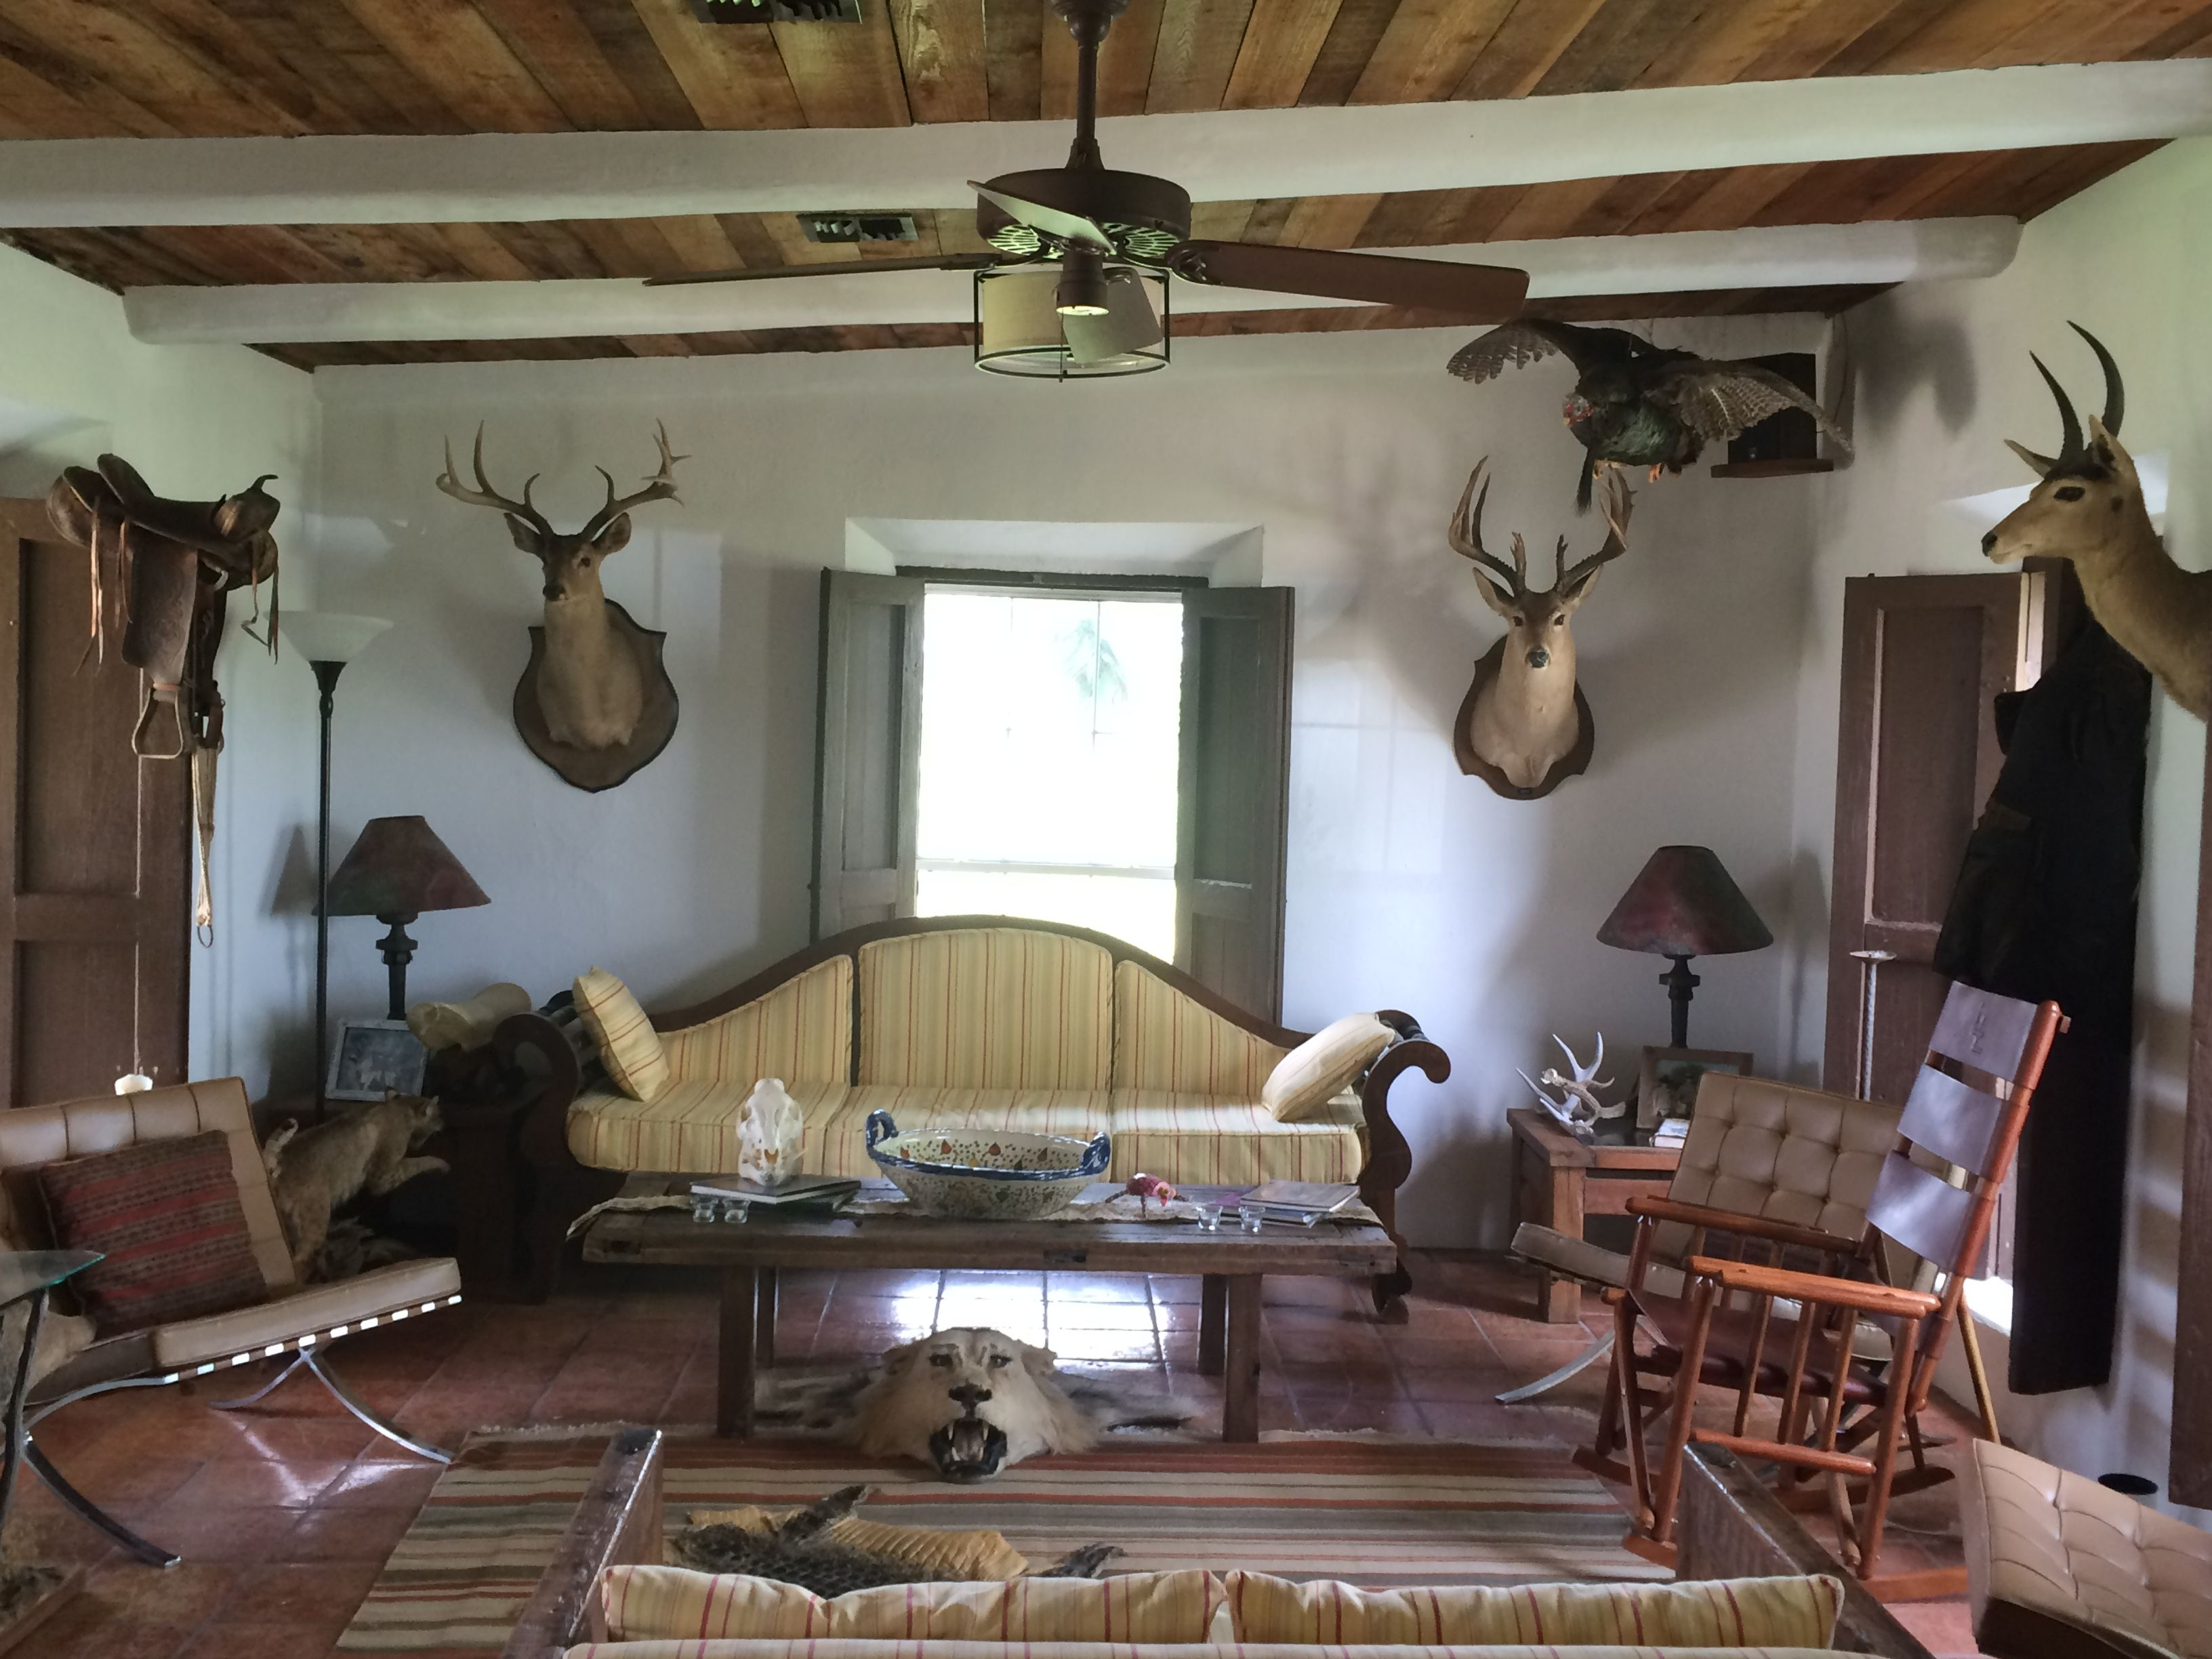 The main interior of one of the hunting lodge's on the Ranch. #hunting #kingranch #ranch #Texas #country #decor